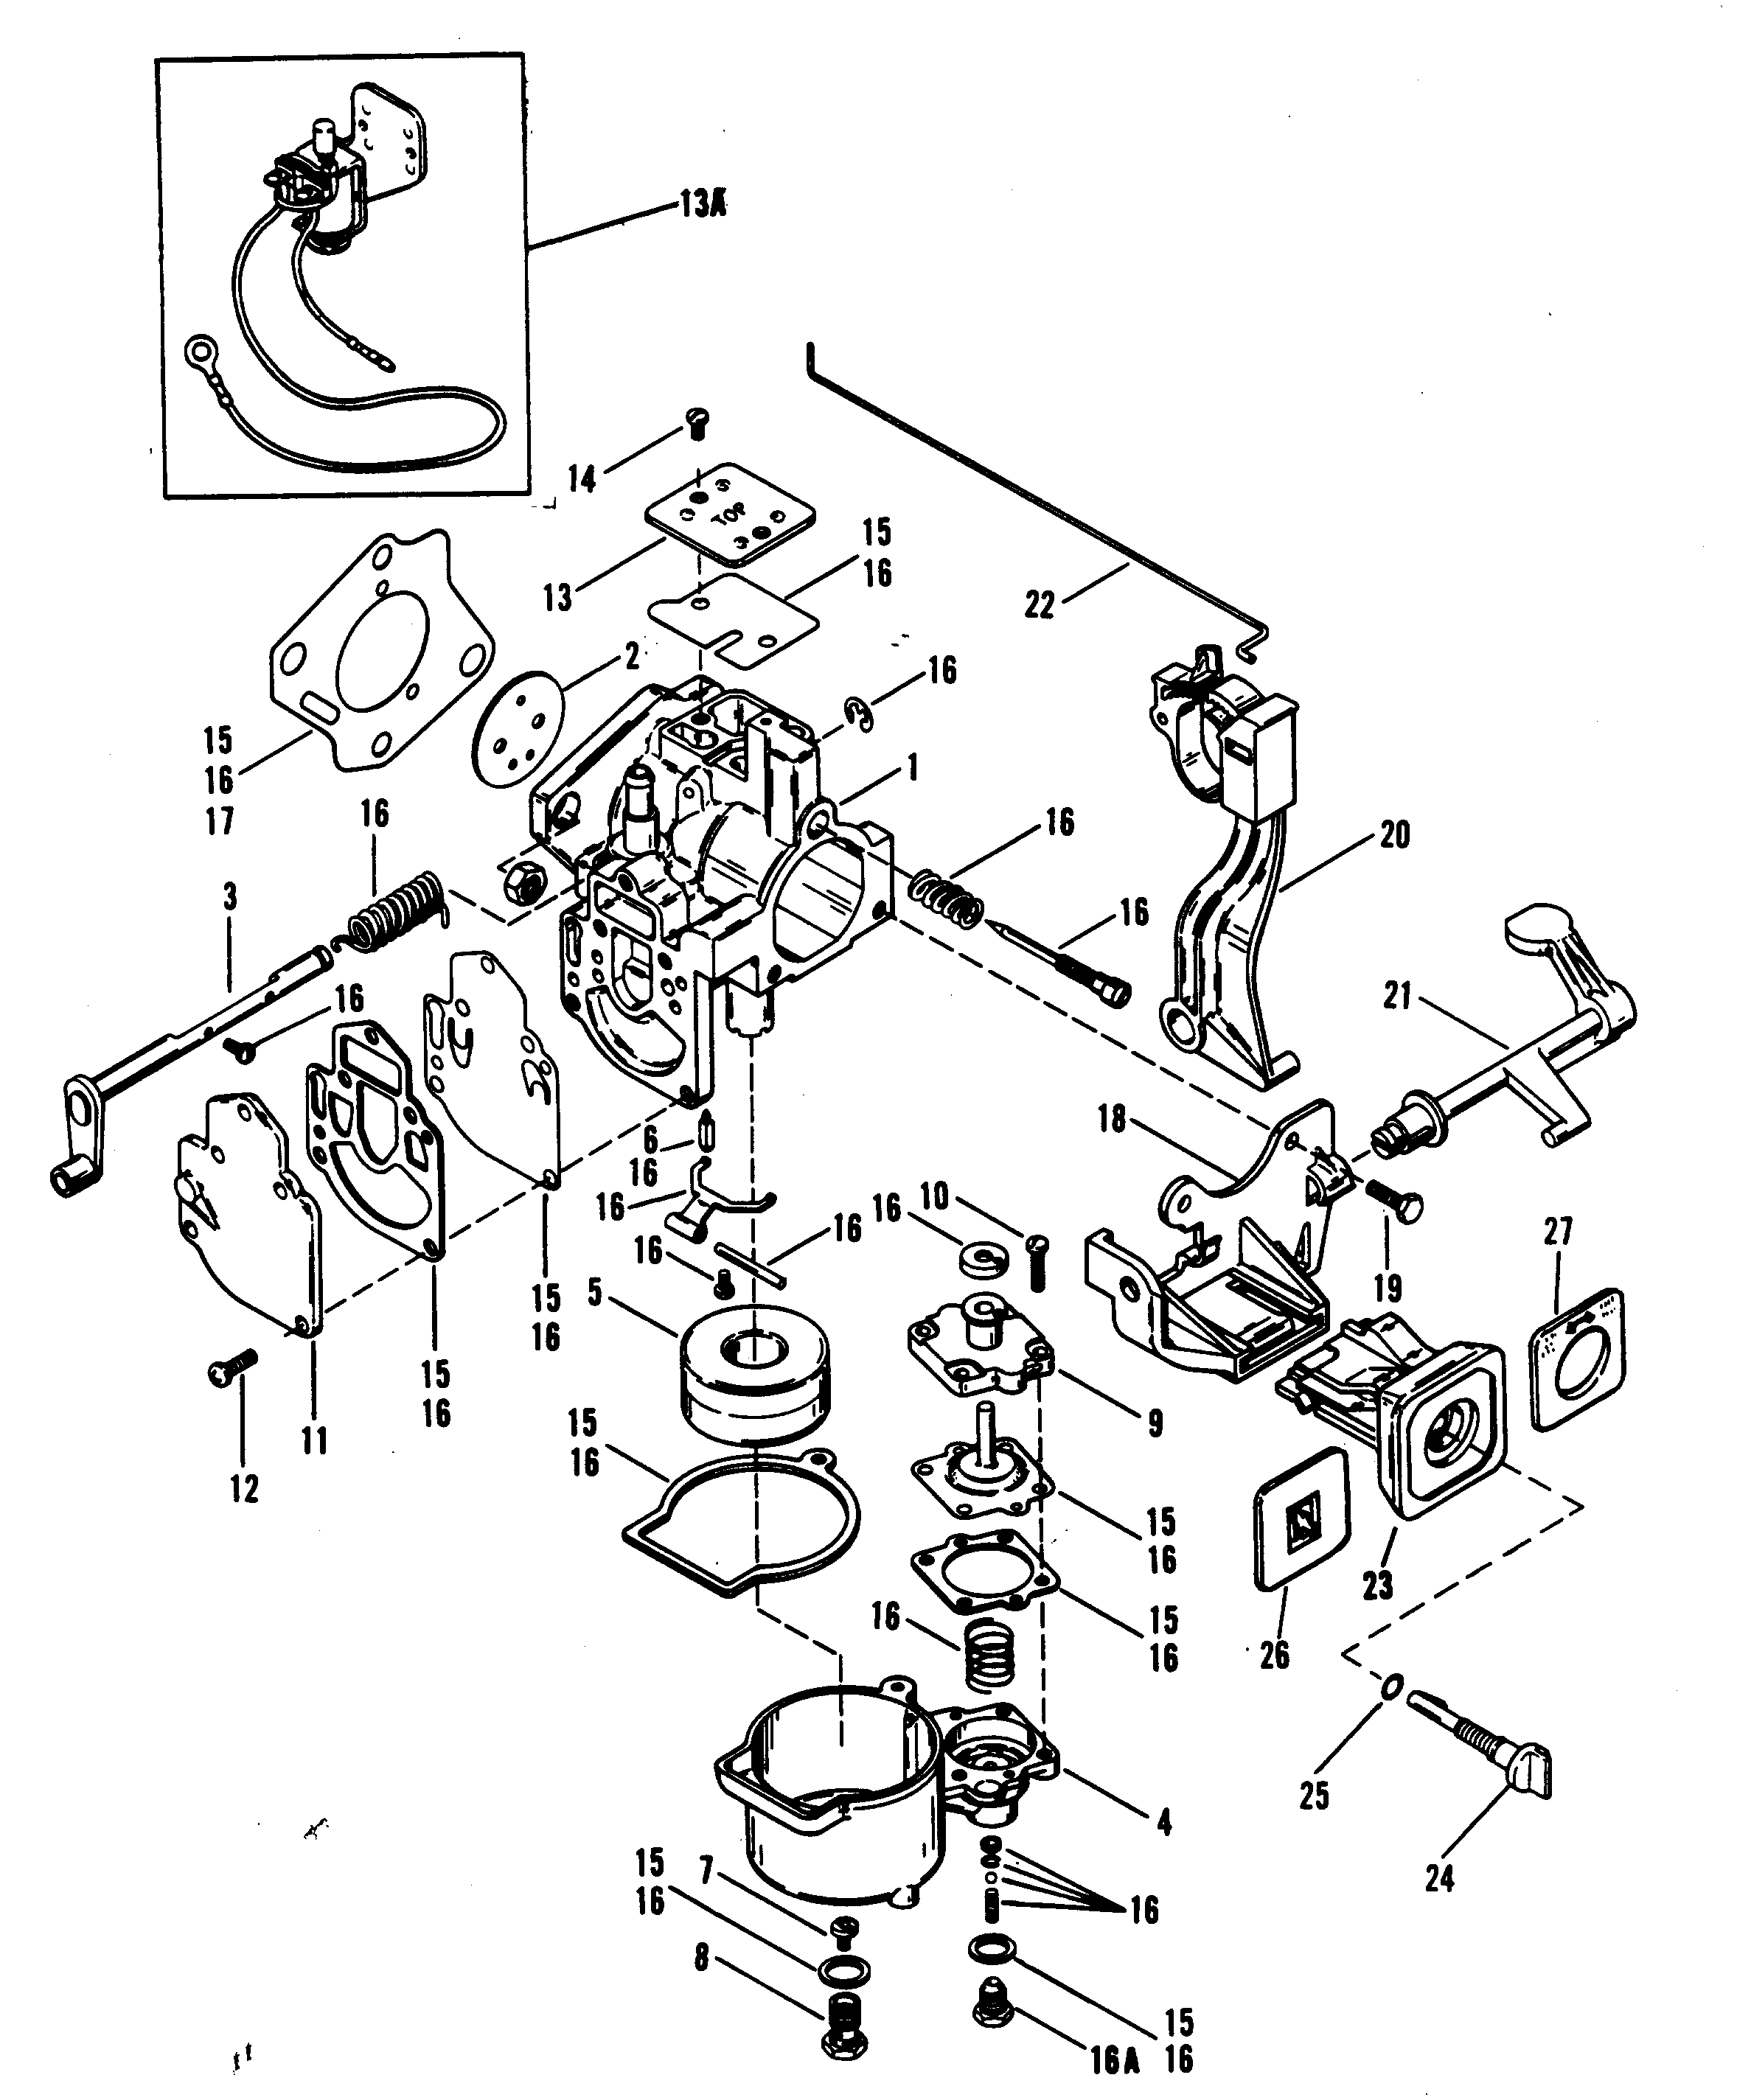 25 hp kohler engine carburetor diagram 23 hp kohler engine